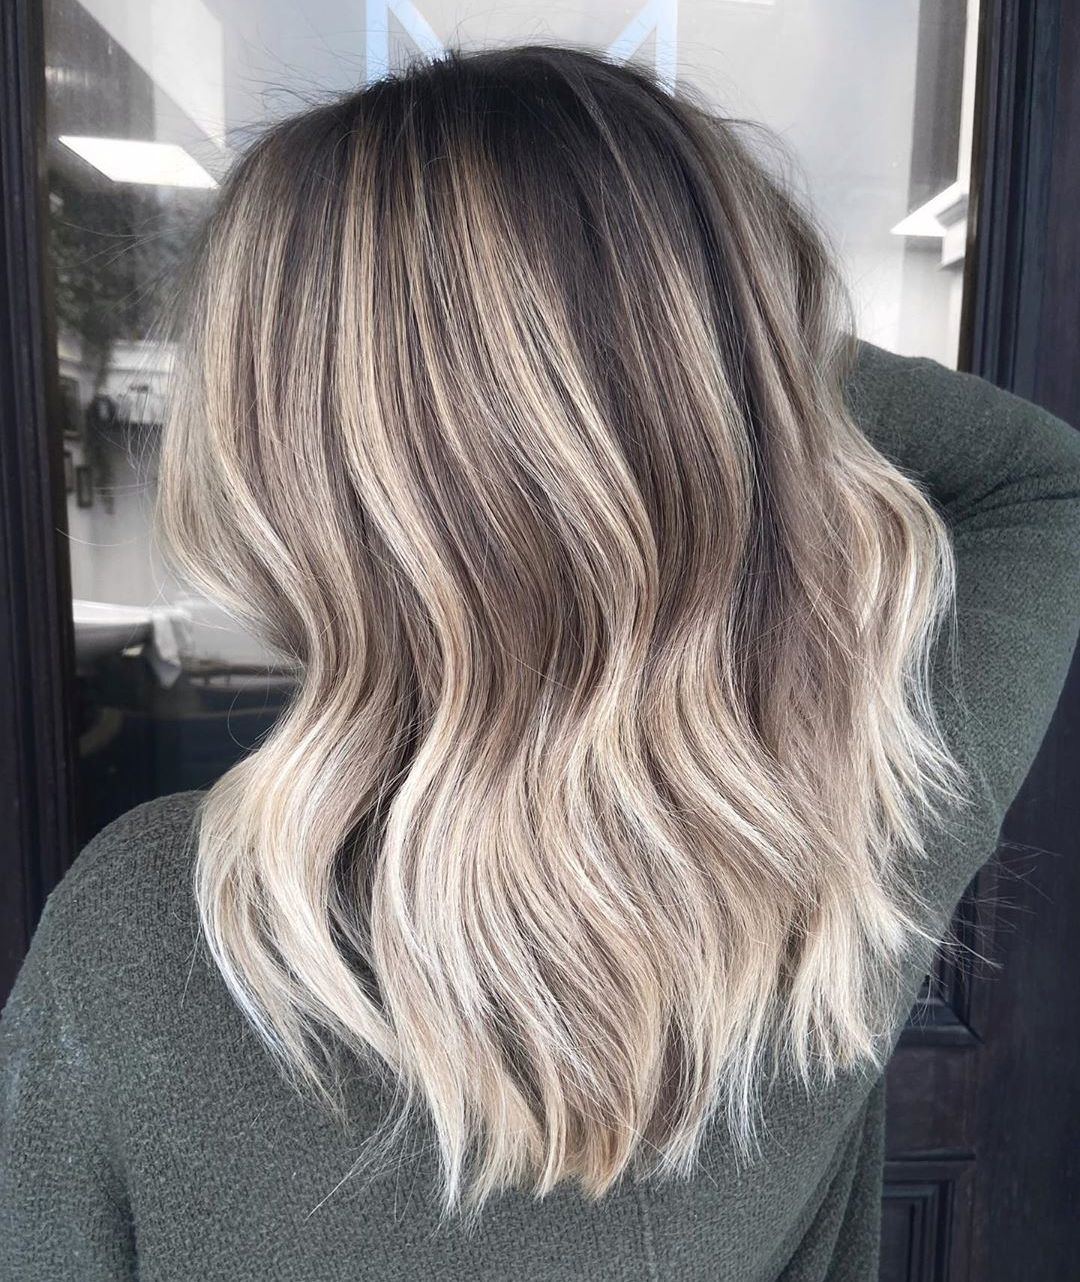 Cool-Toned Ash Blonde Hair with Waves